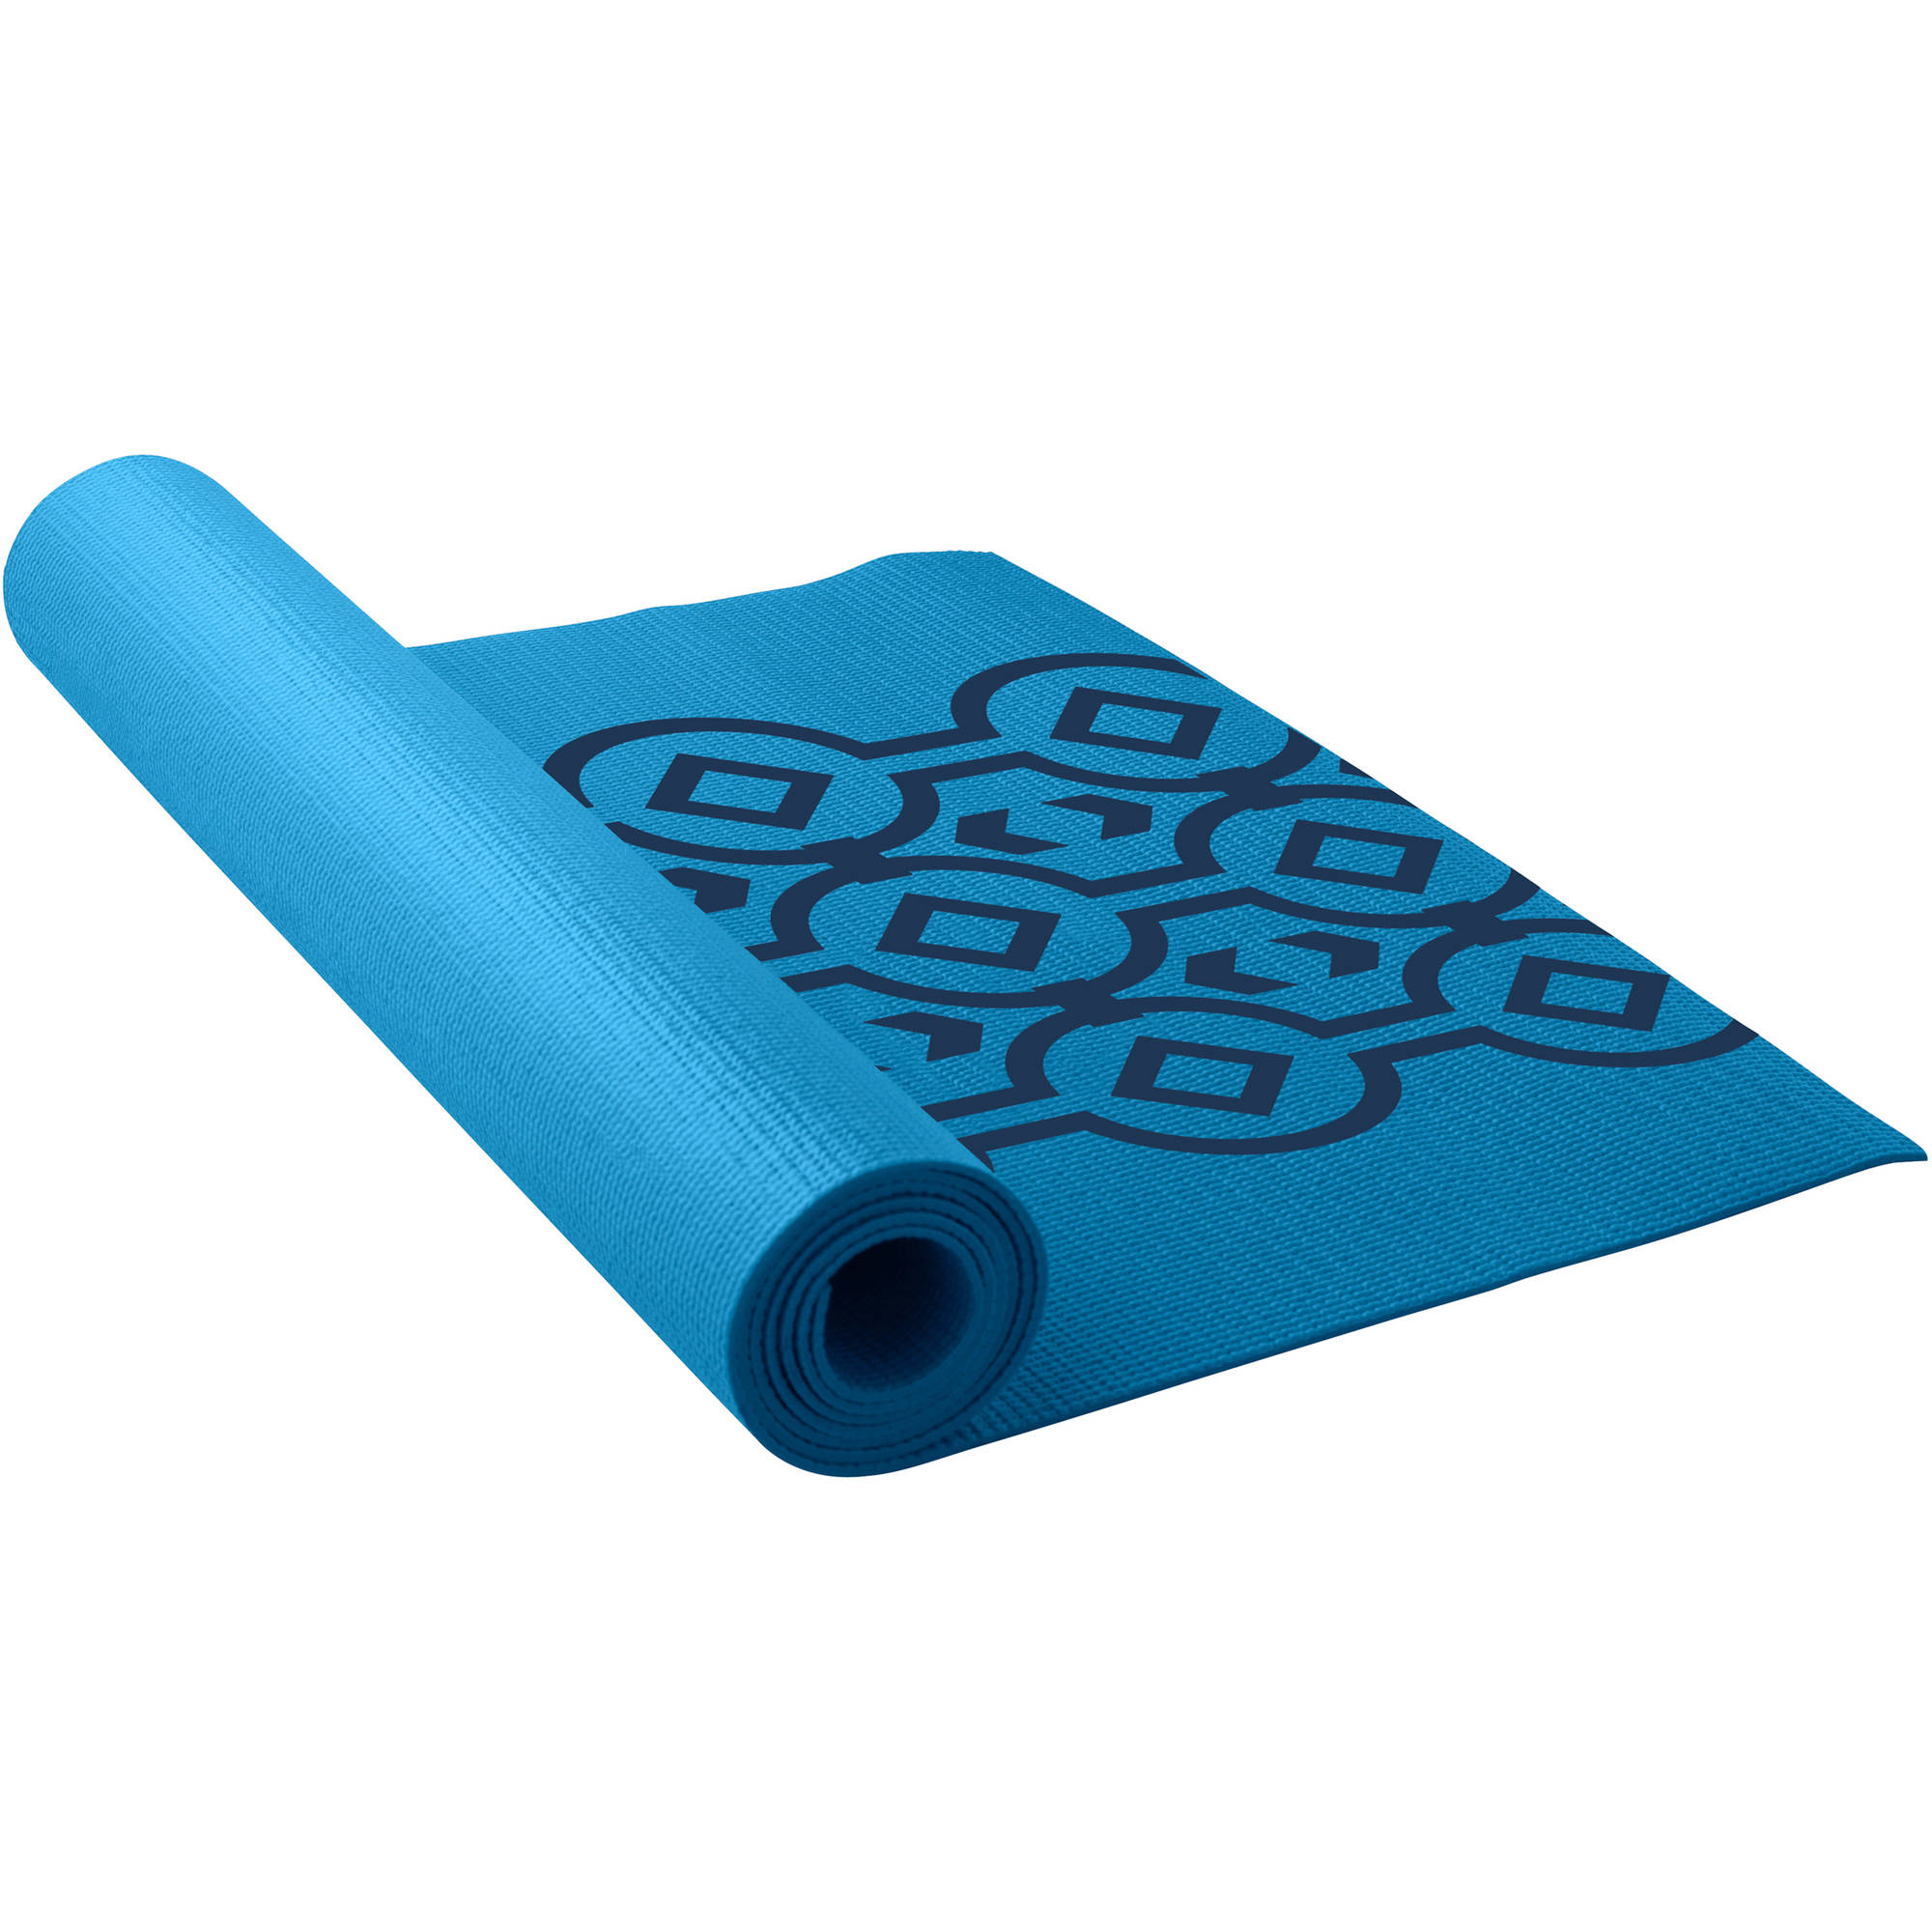 Lotus Printed Yoga Mat